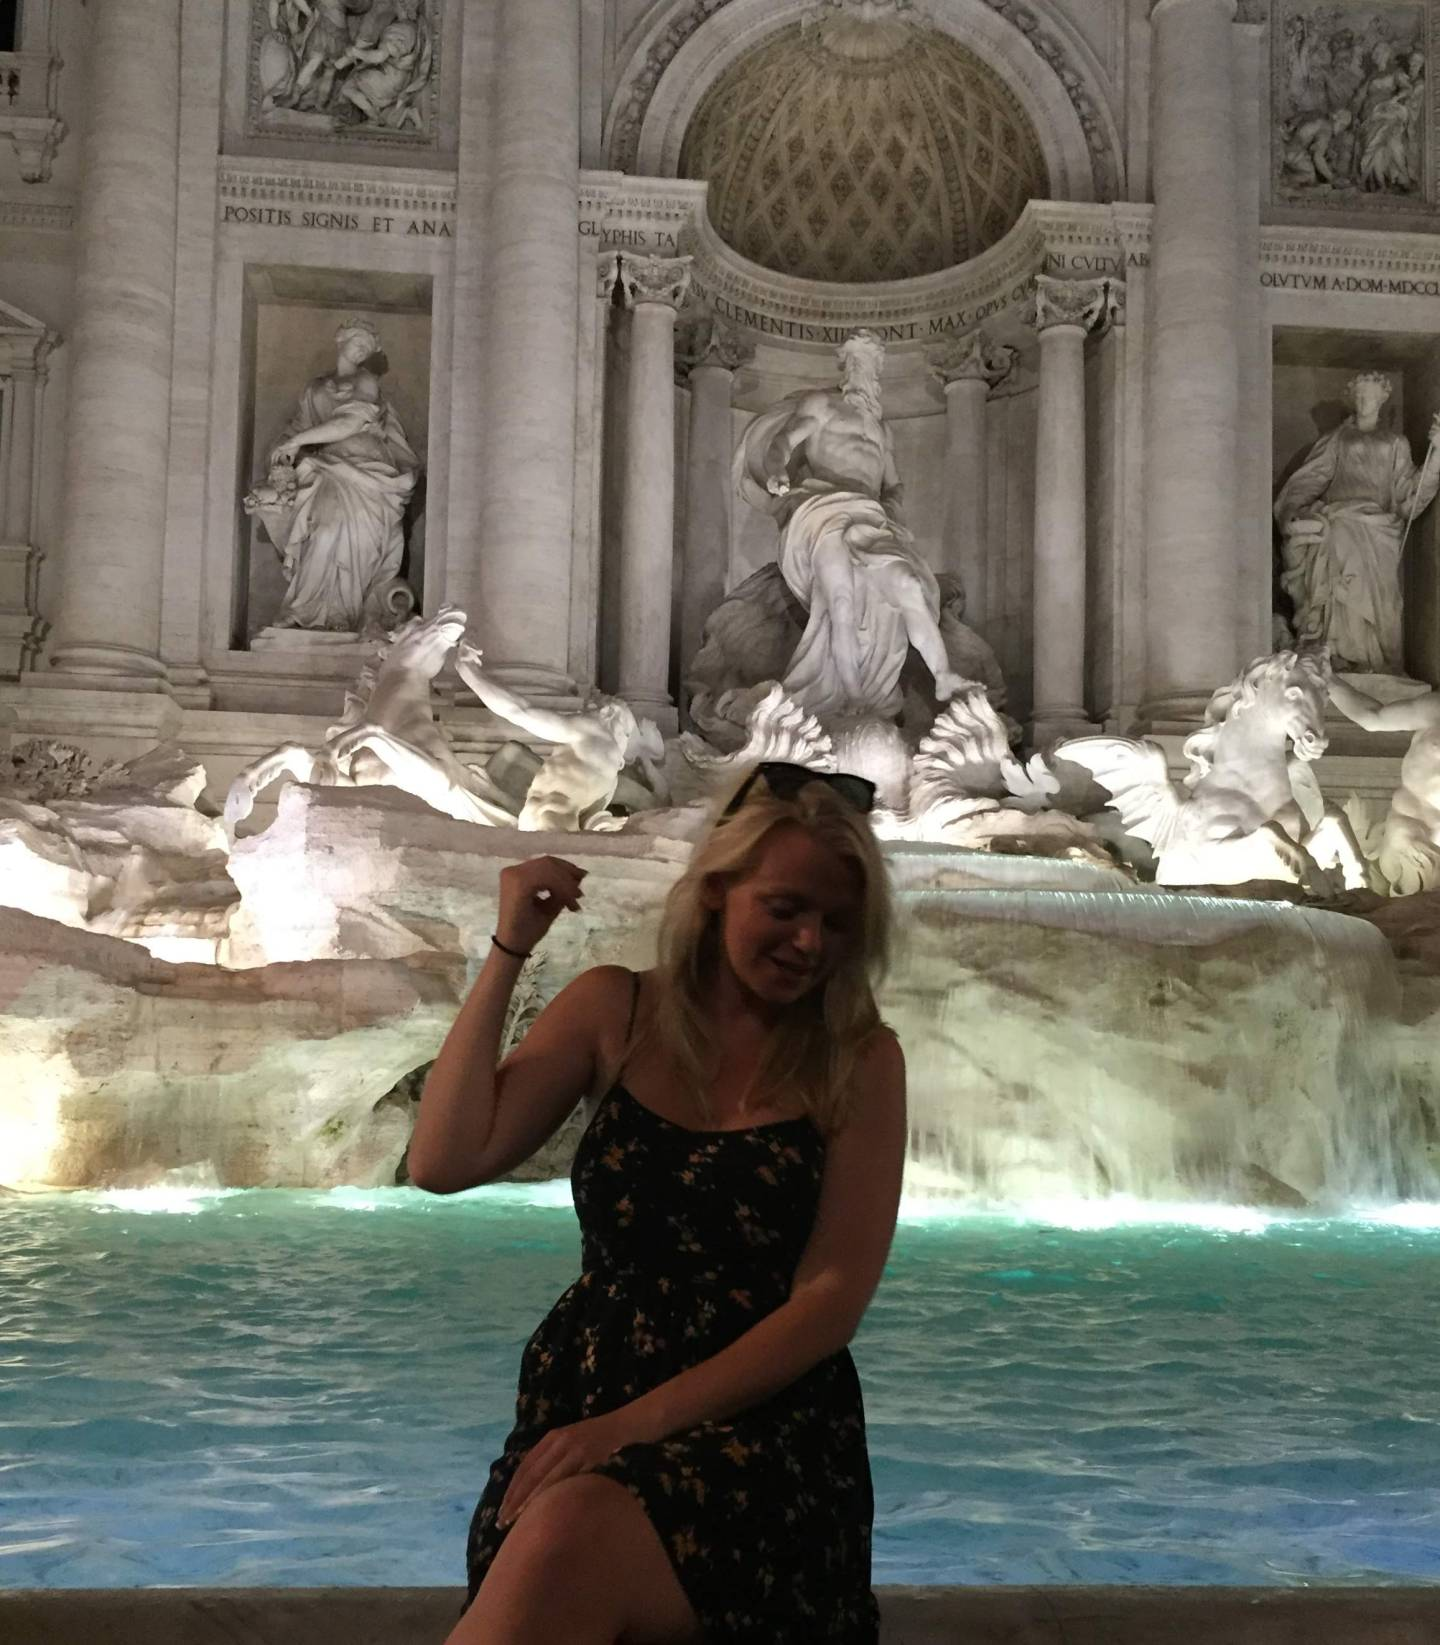 Laura throwing a coin in the Trevi Fountain